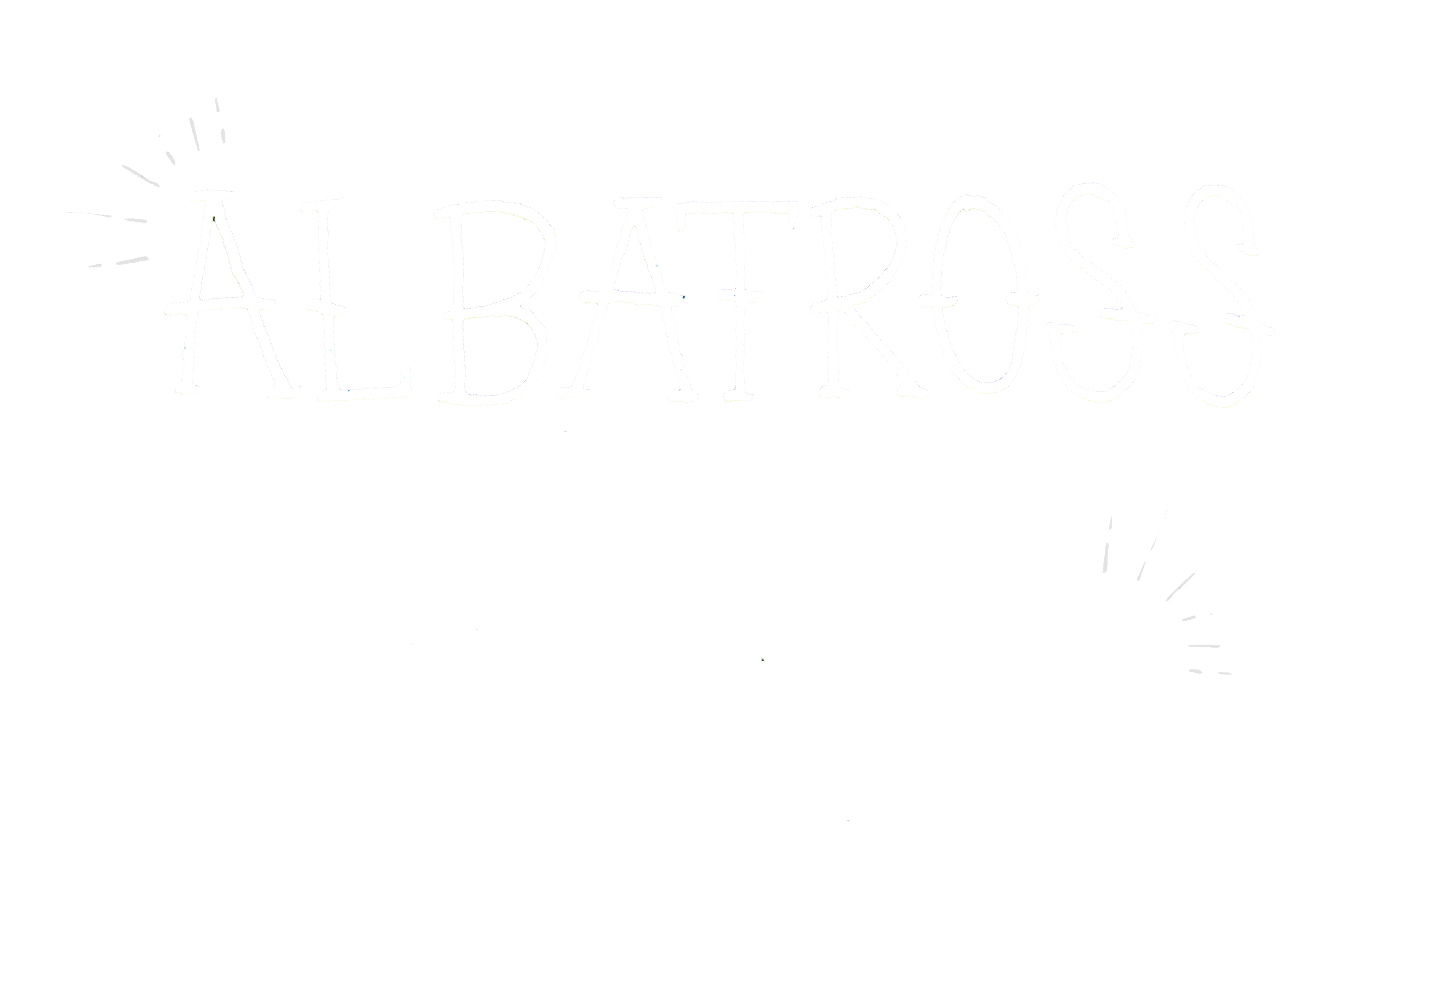 Albatross and Mariner